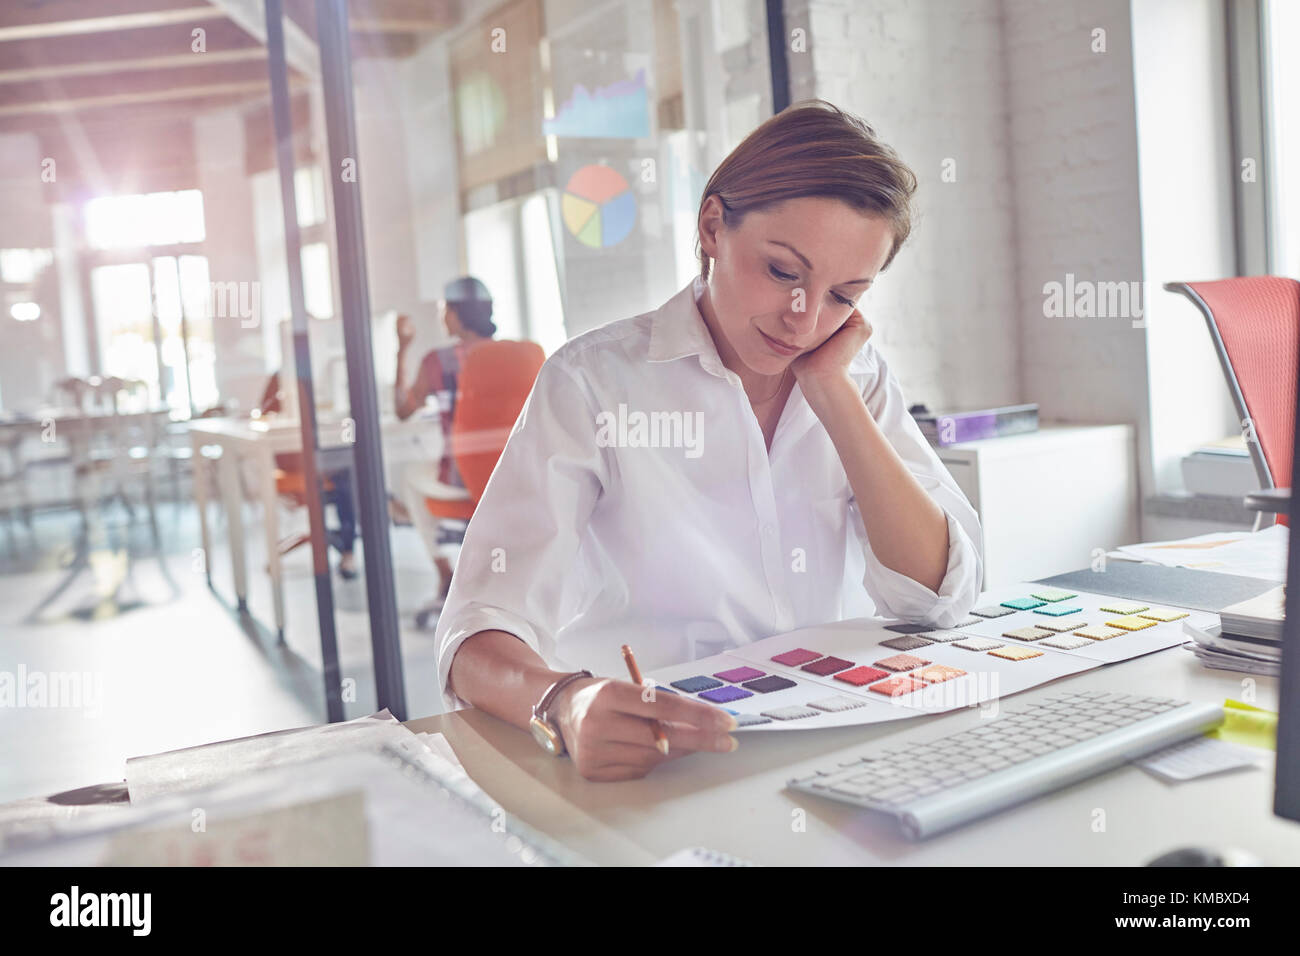 Female design professional reviewing color swatches in office Stock Photo